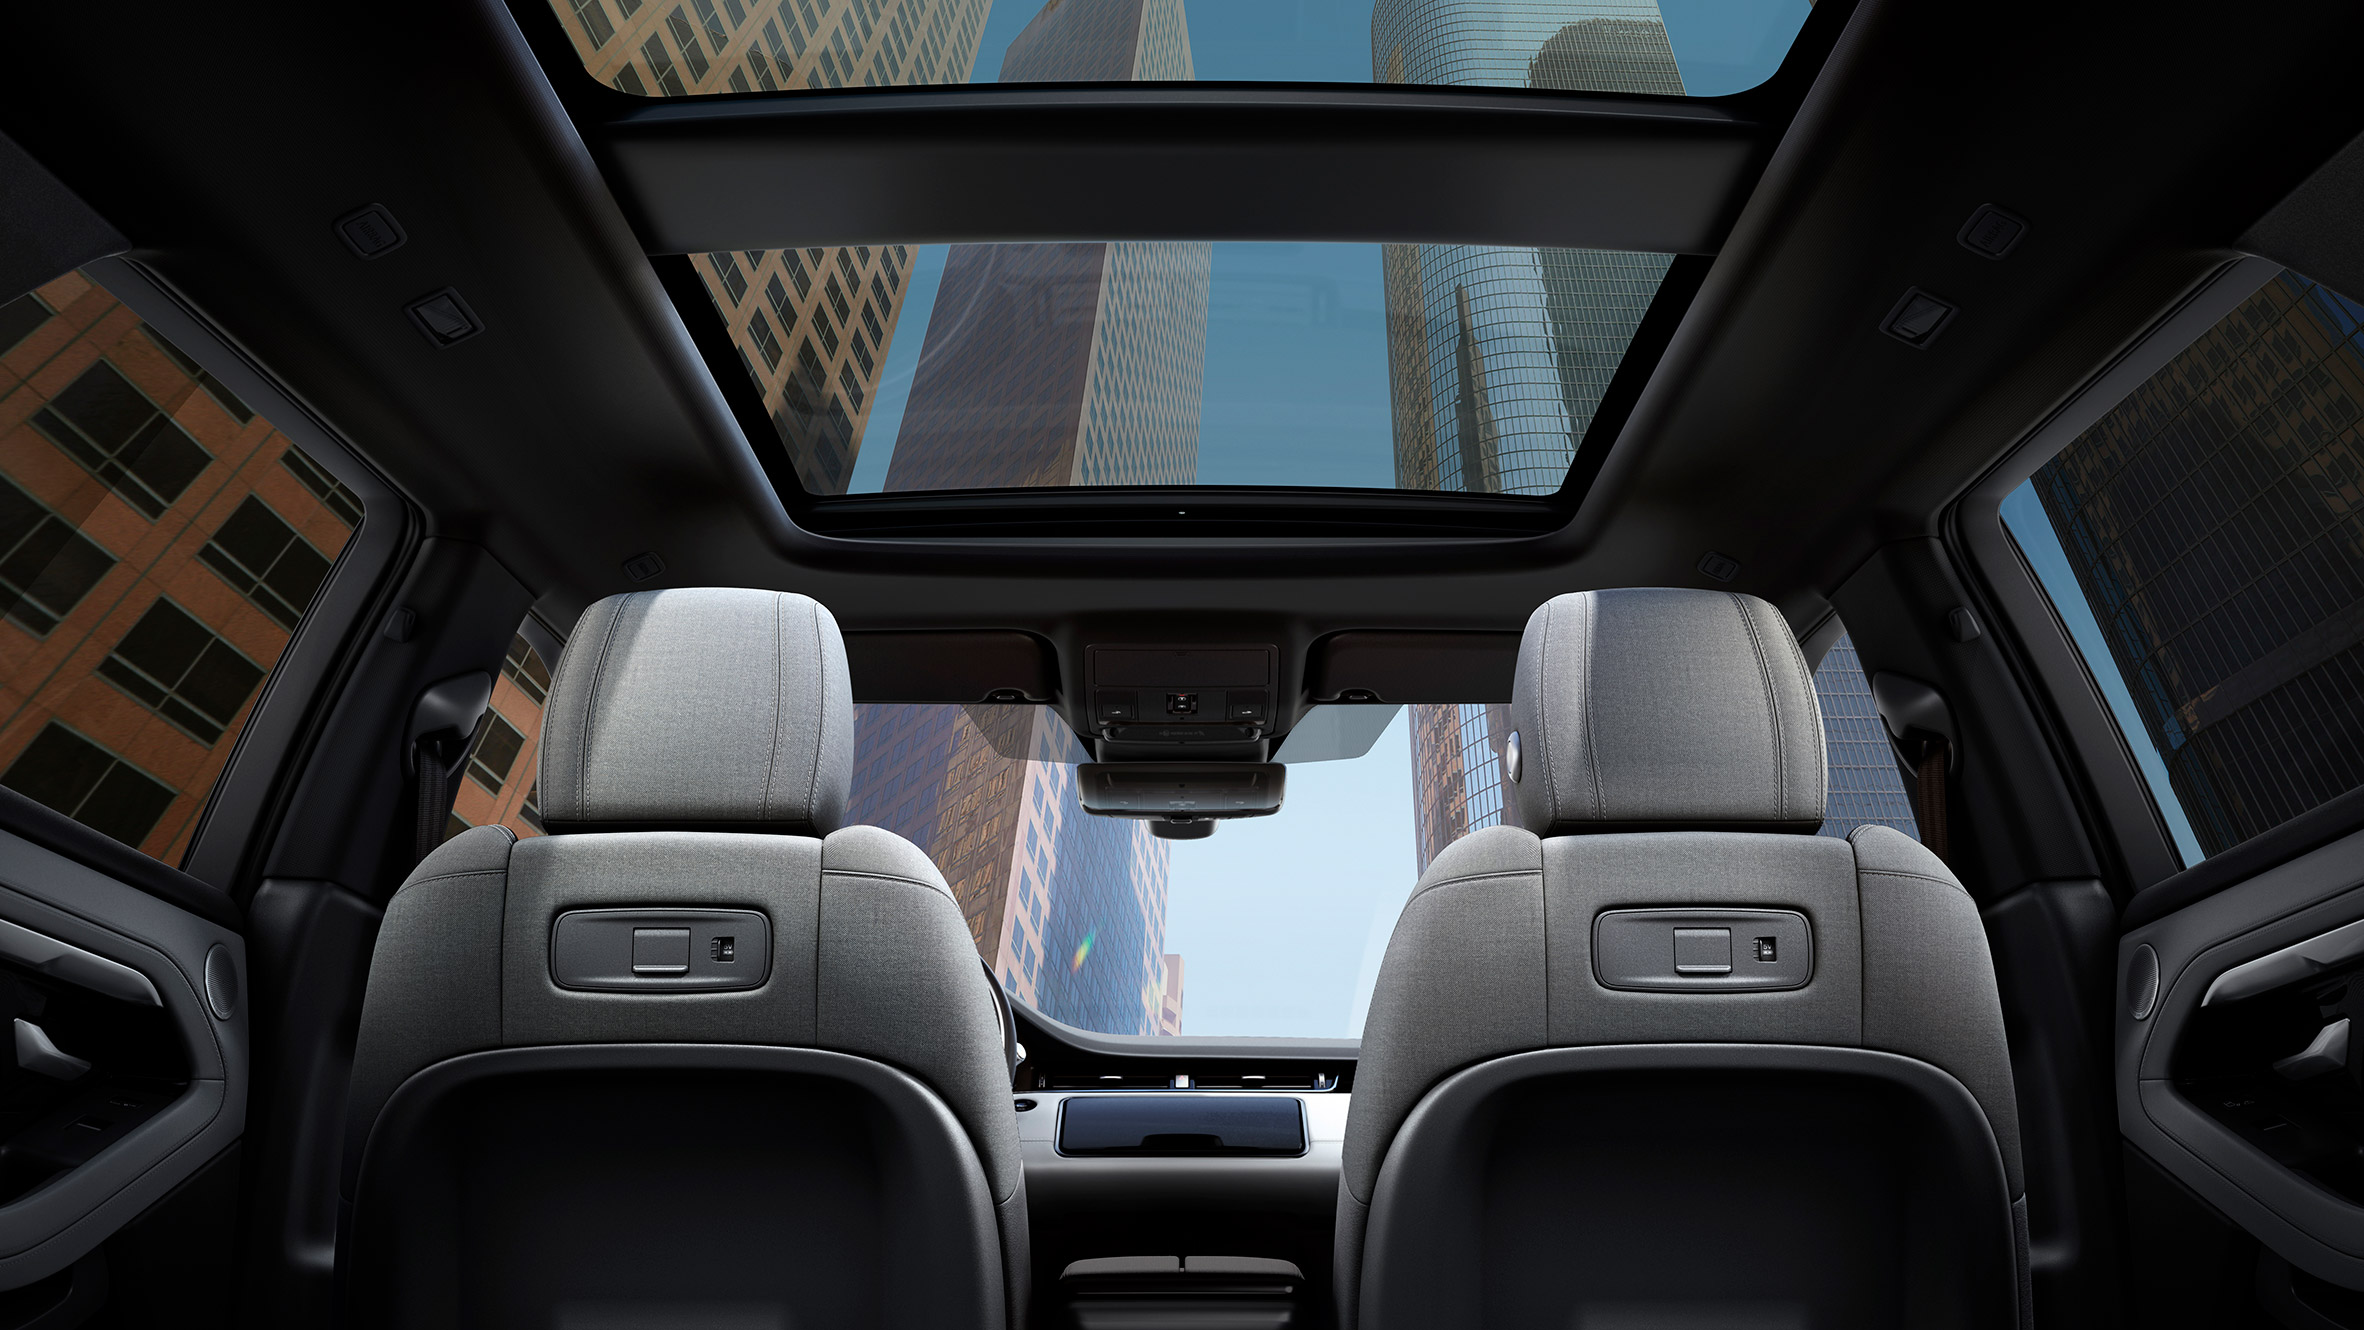 Range Rover Interior >> Range Rover Evoque Offers Upholstery In Non Leather Alternatives